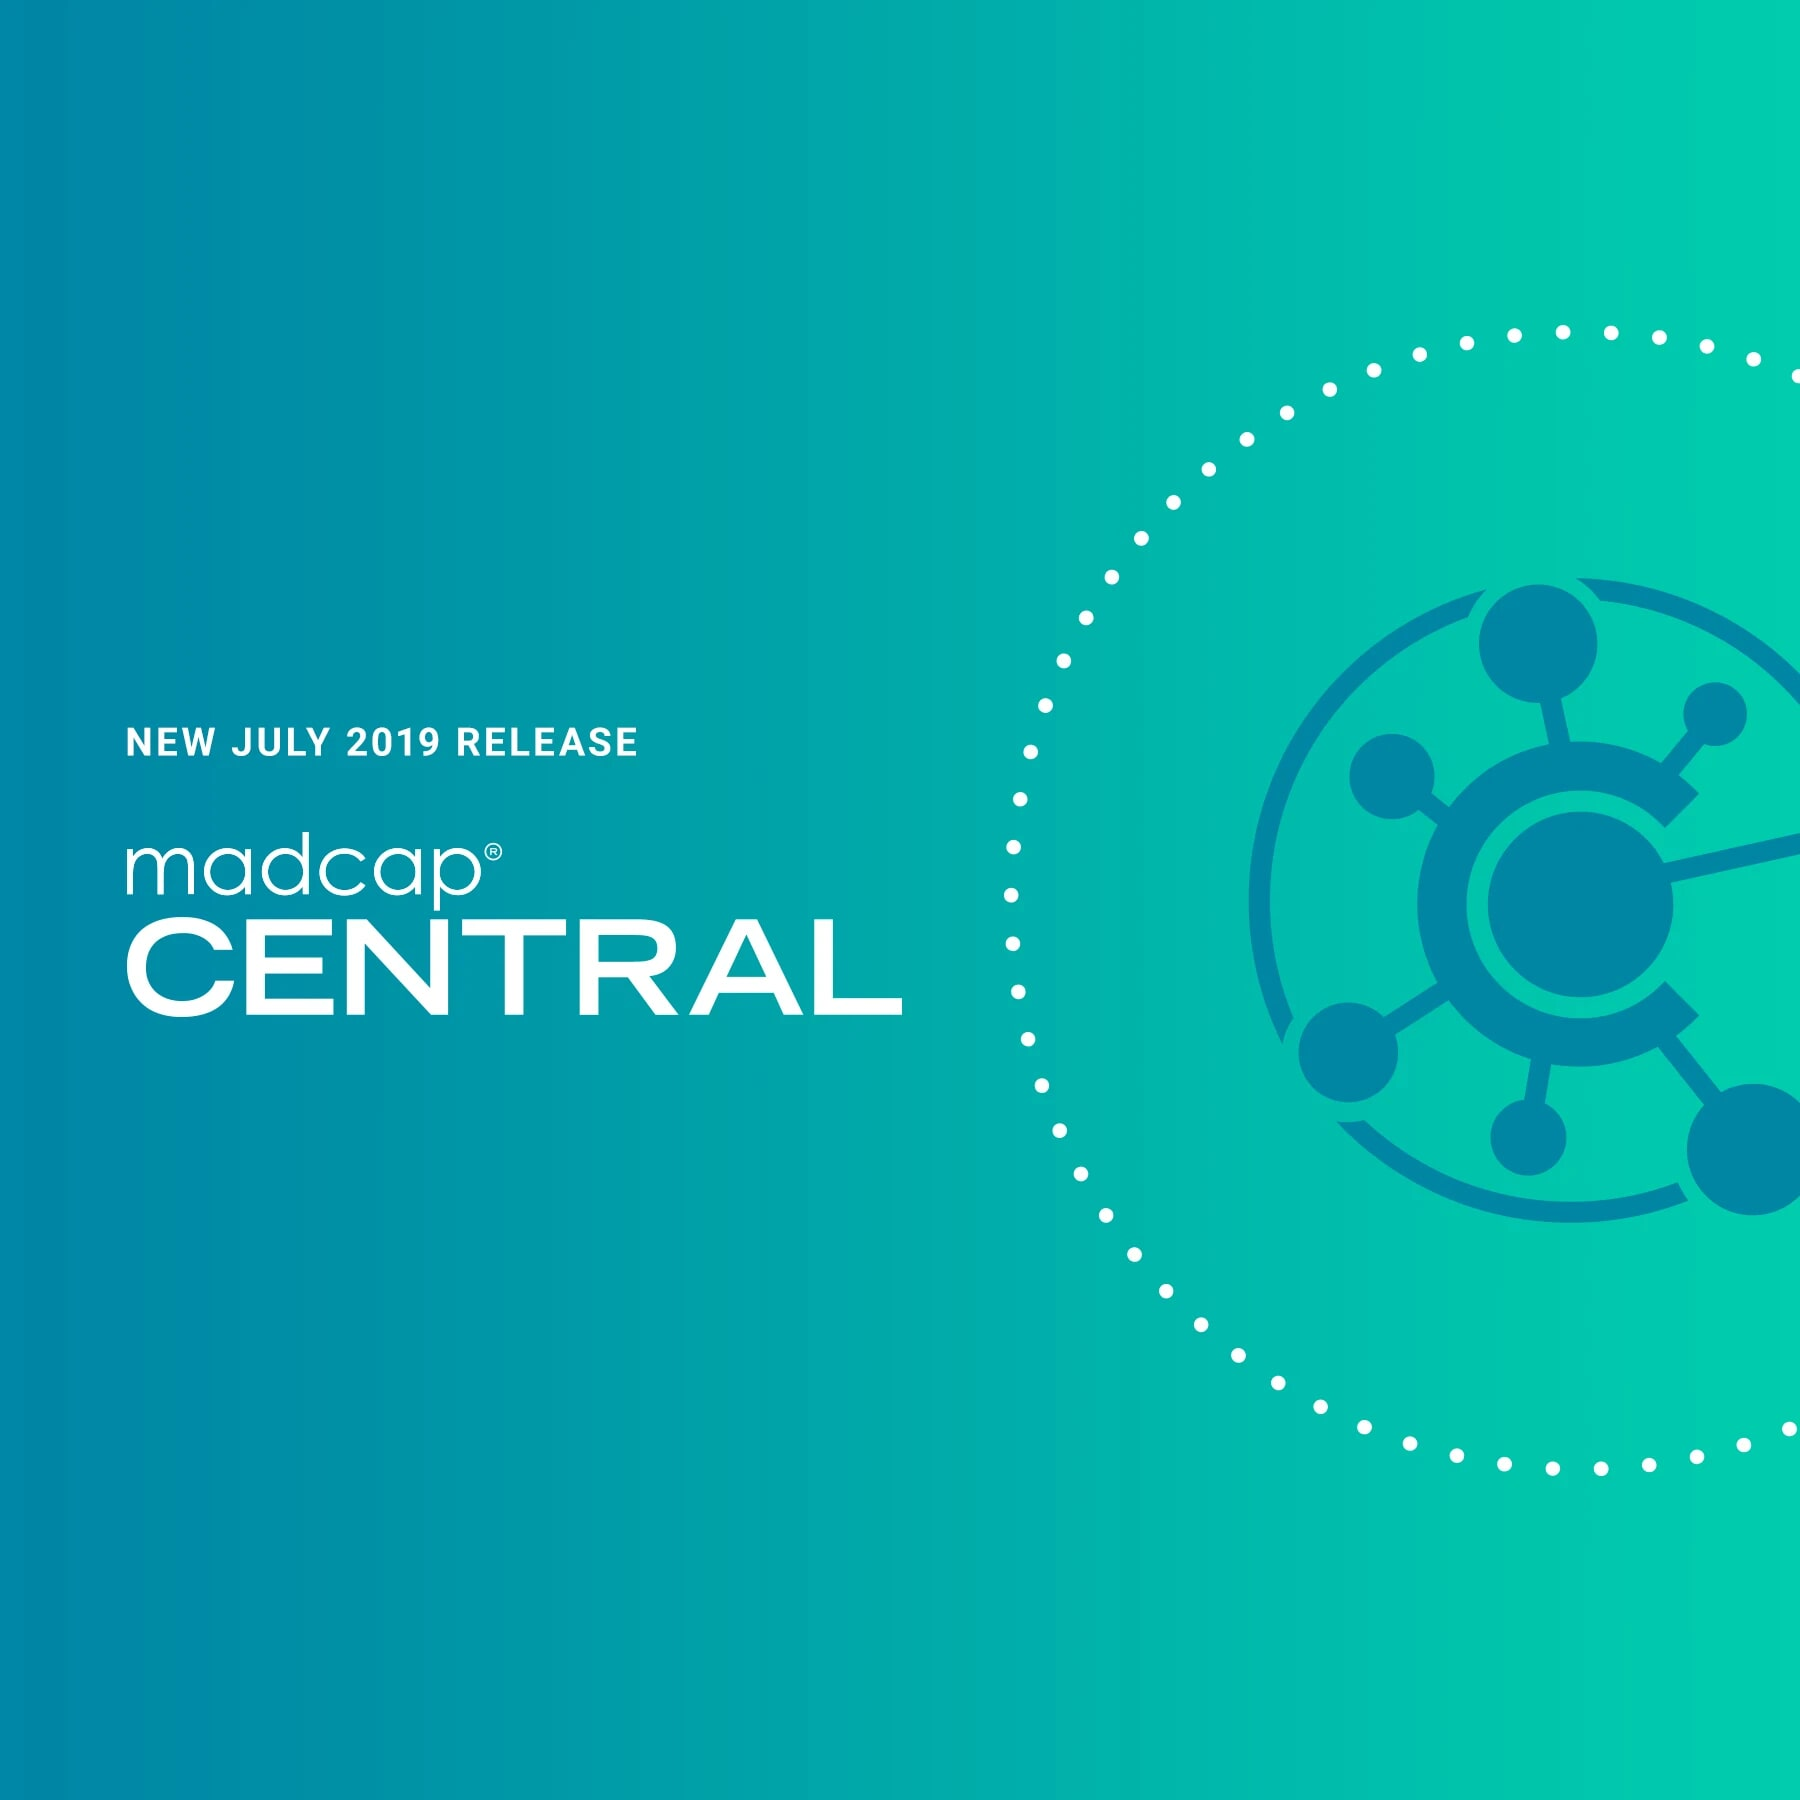 What's New in MadCap Central July 2019 Release